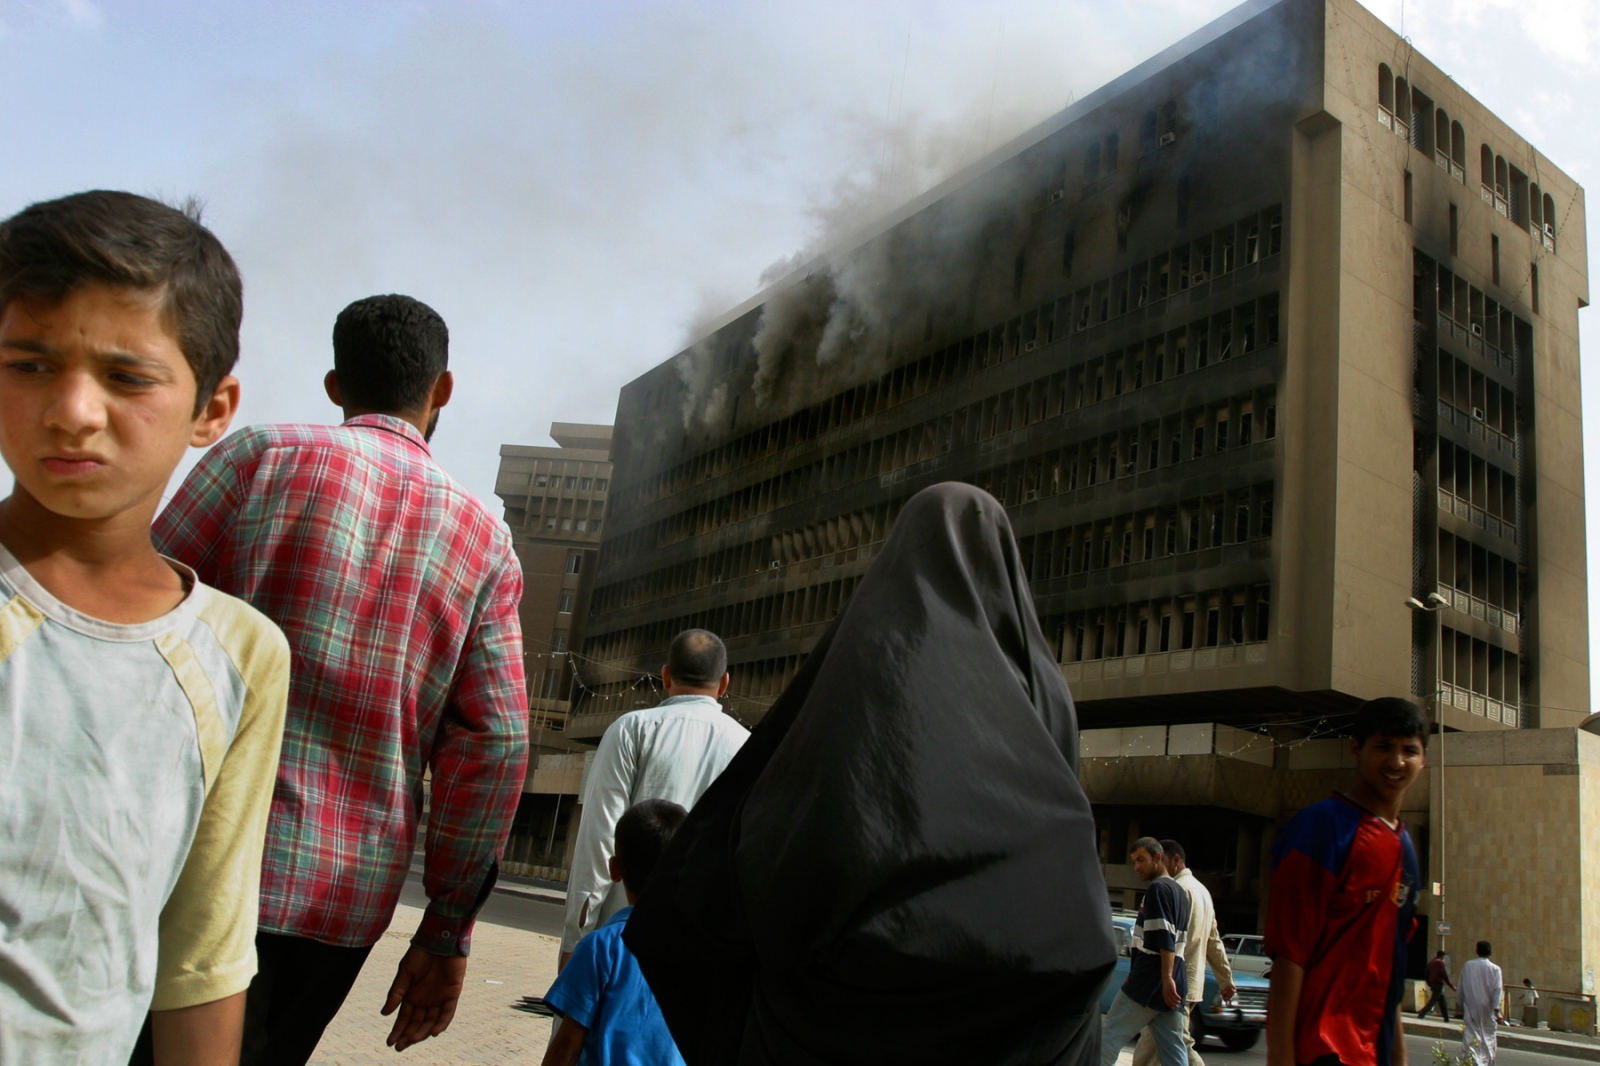 Iraqis are in shock as they walk in downtown Baghdad and find many of its buildings smoldering from looting by locals.